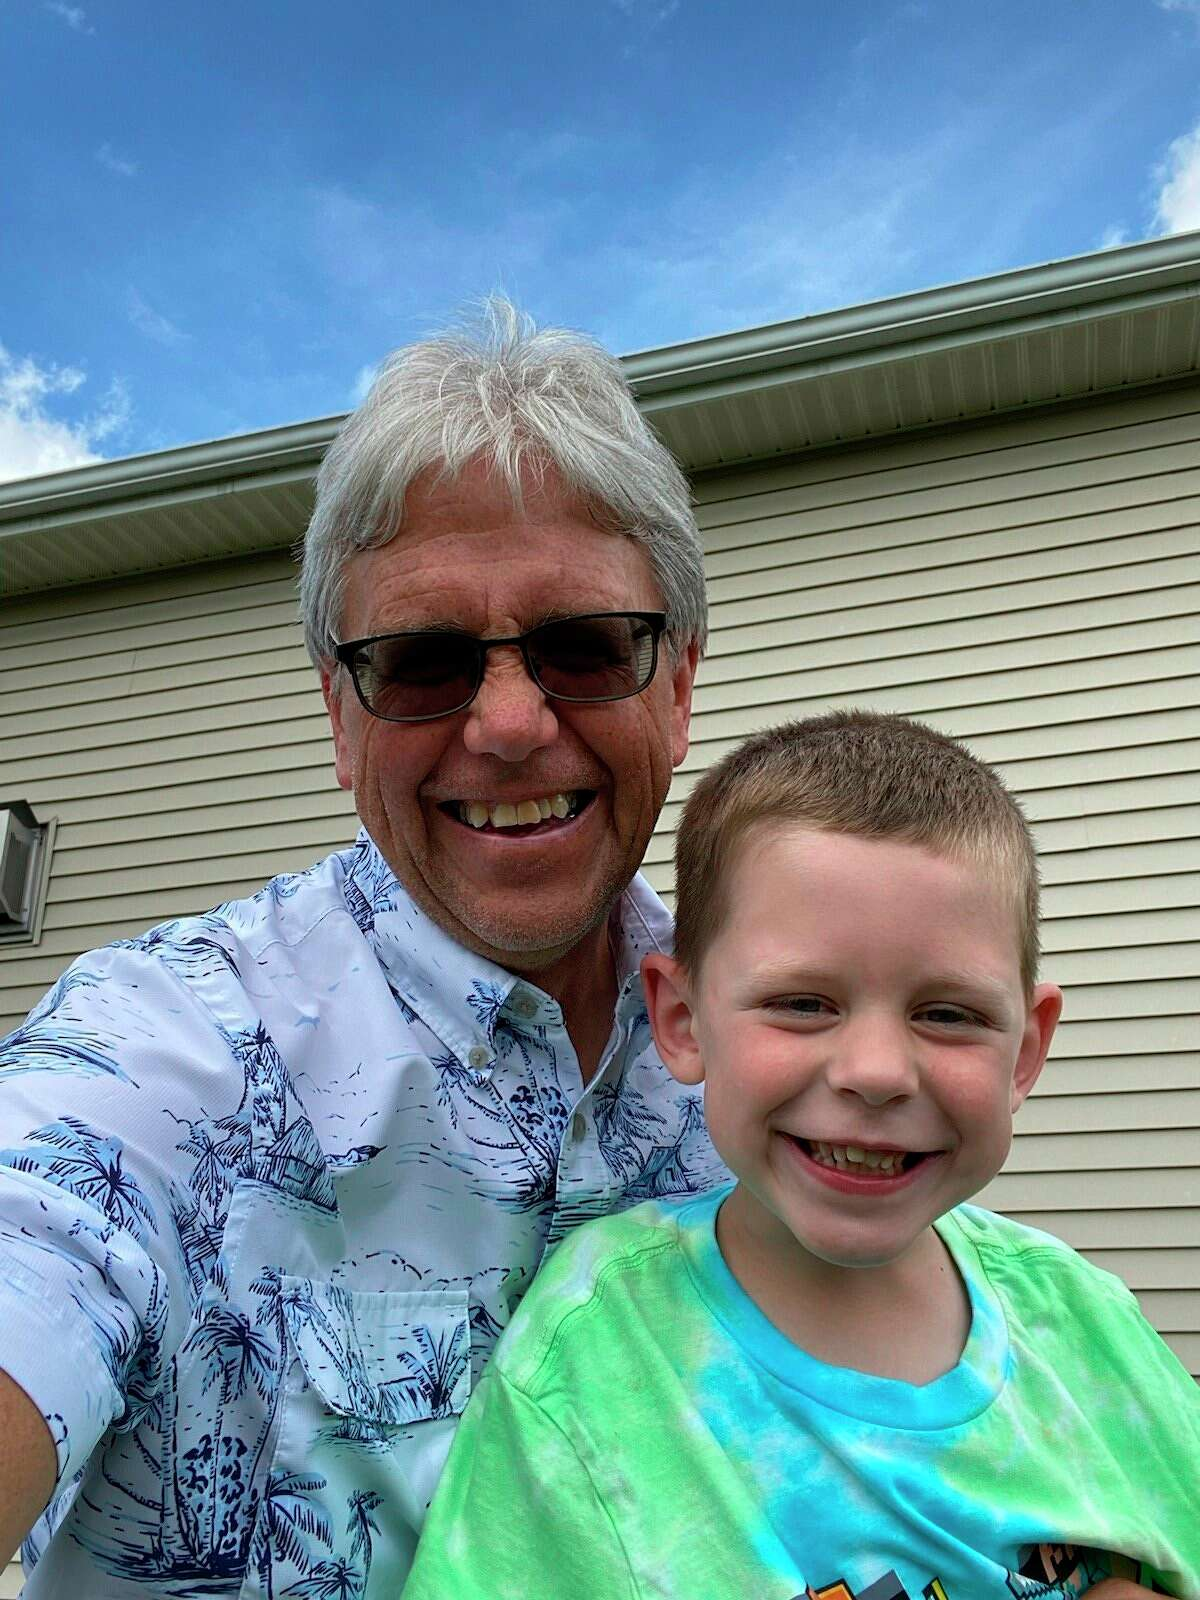 Chuck McCourt, left, is pictured with one of his grandsons. (Photo provided)